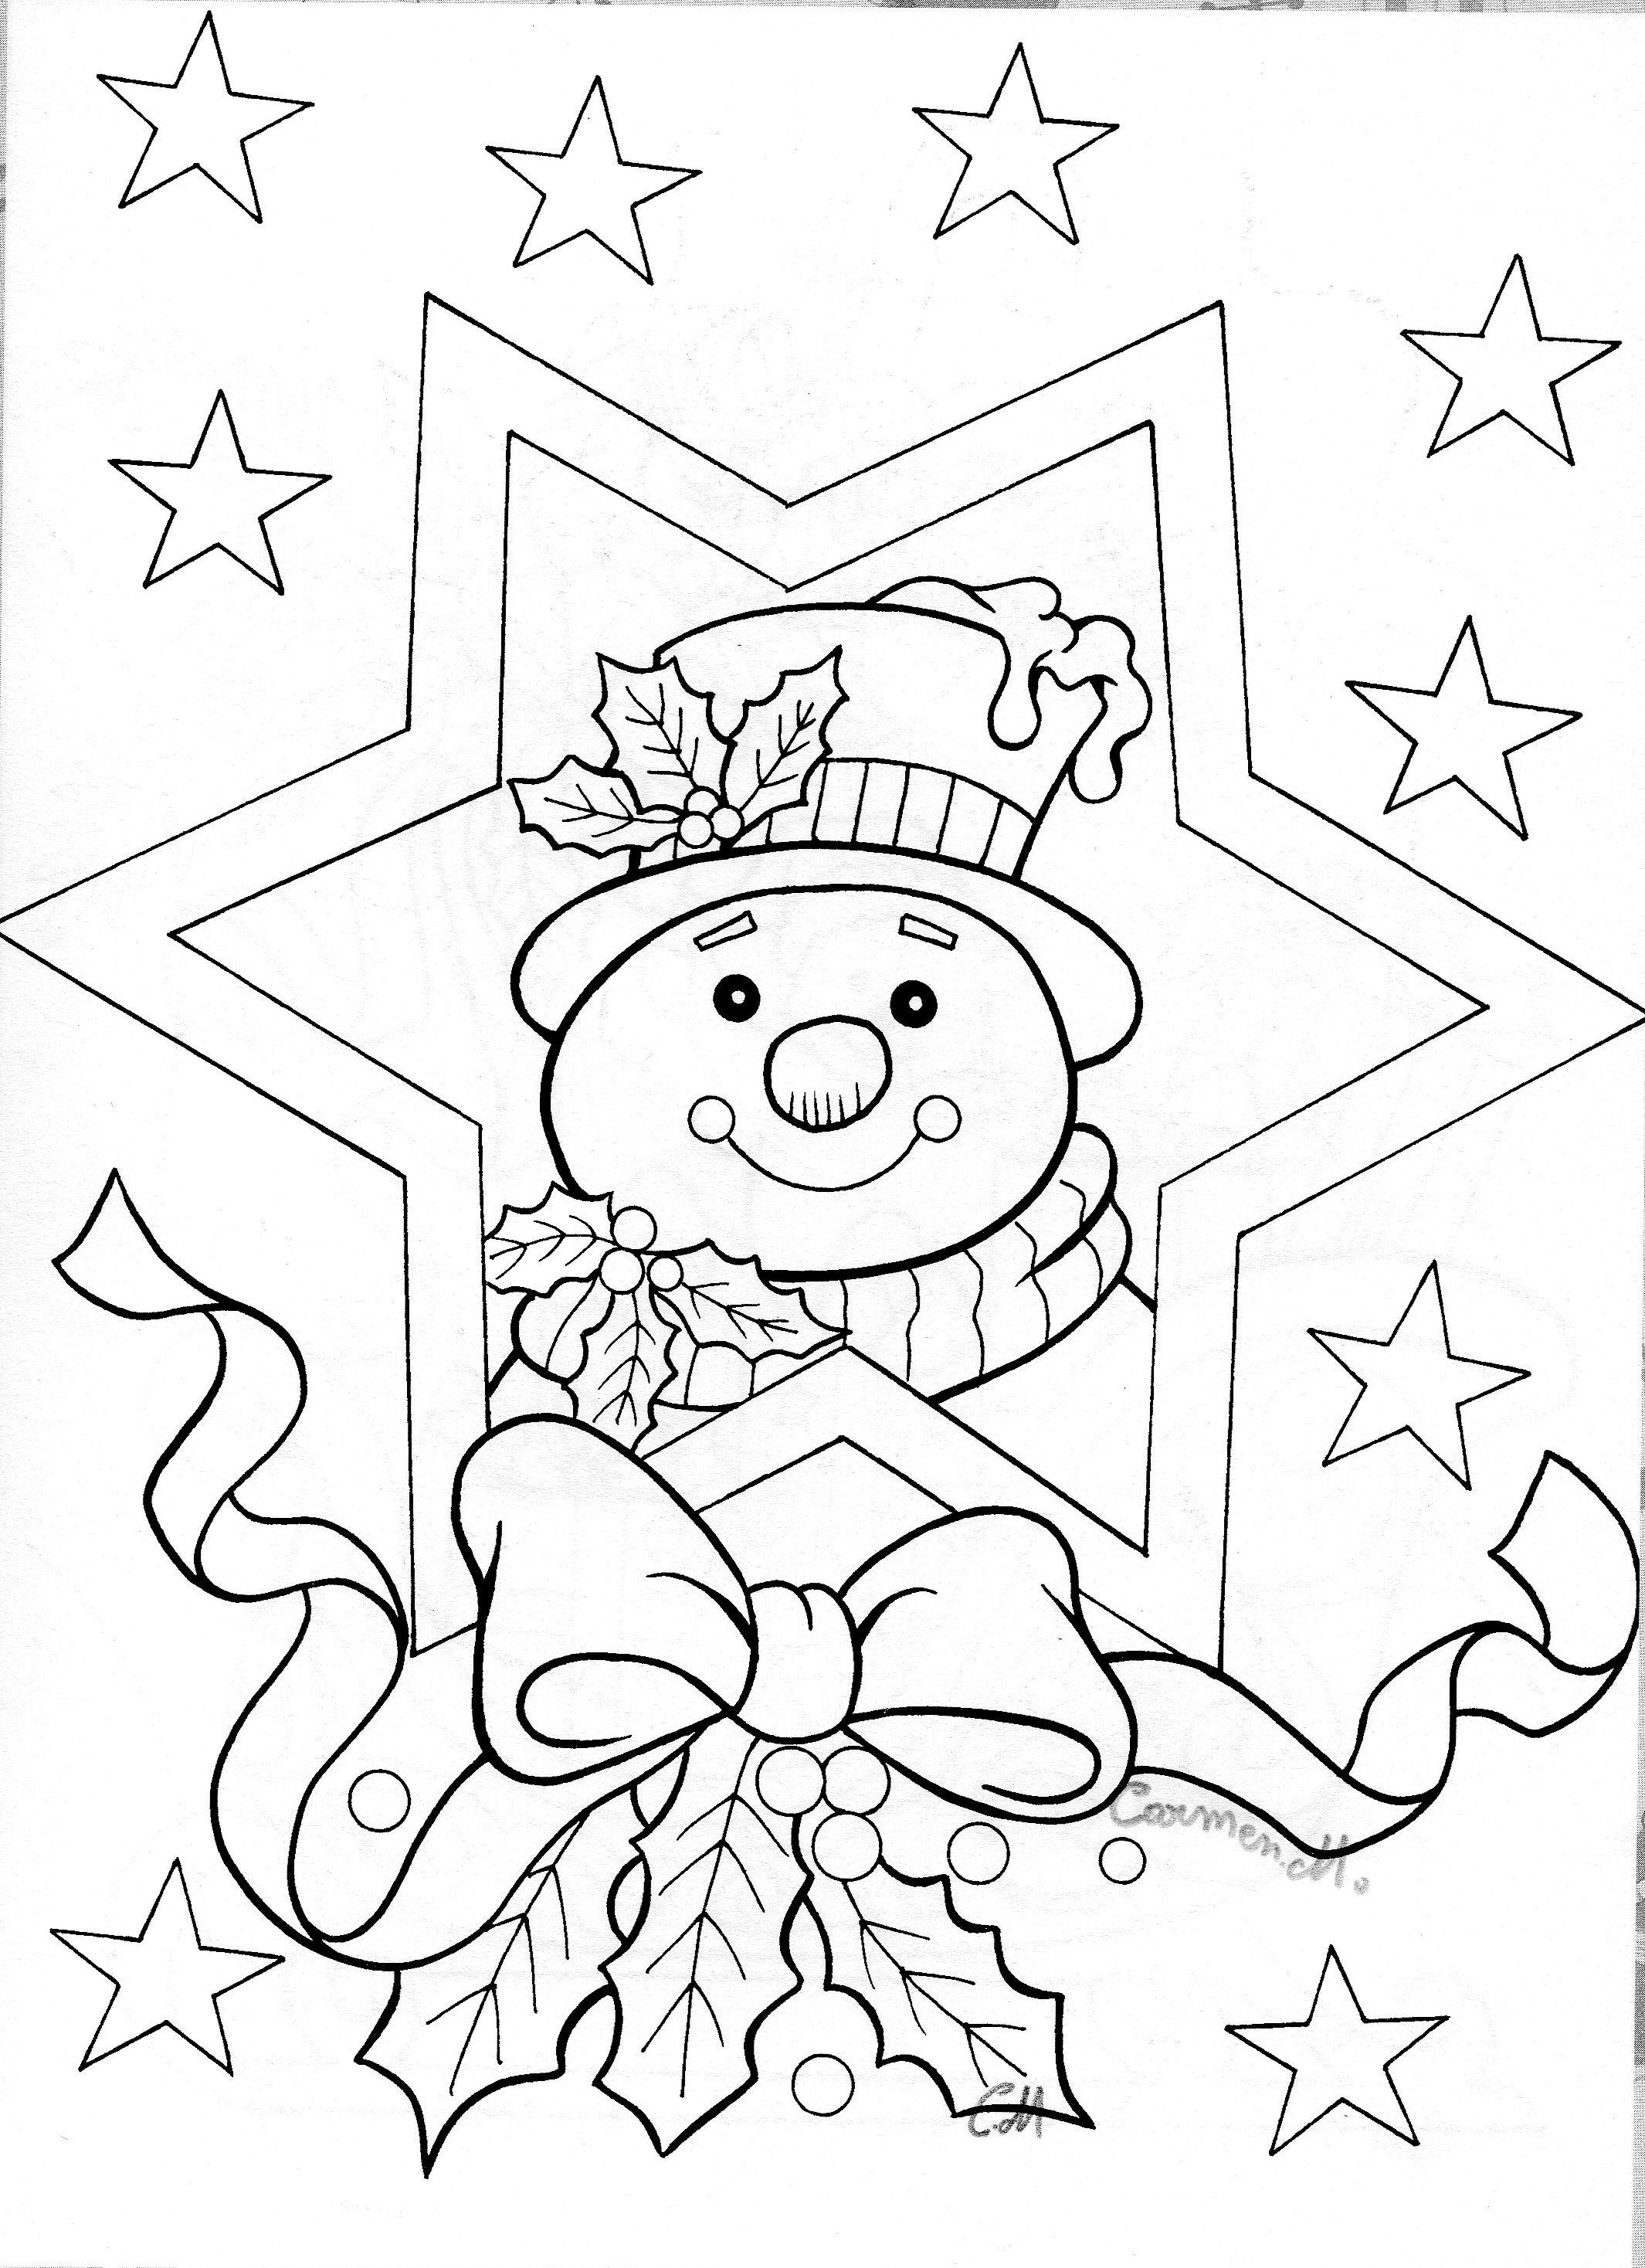 Christmas Coloring Pages Advanced With Snowman Colouring Adult Detailed